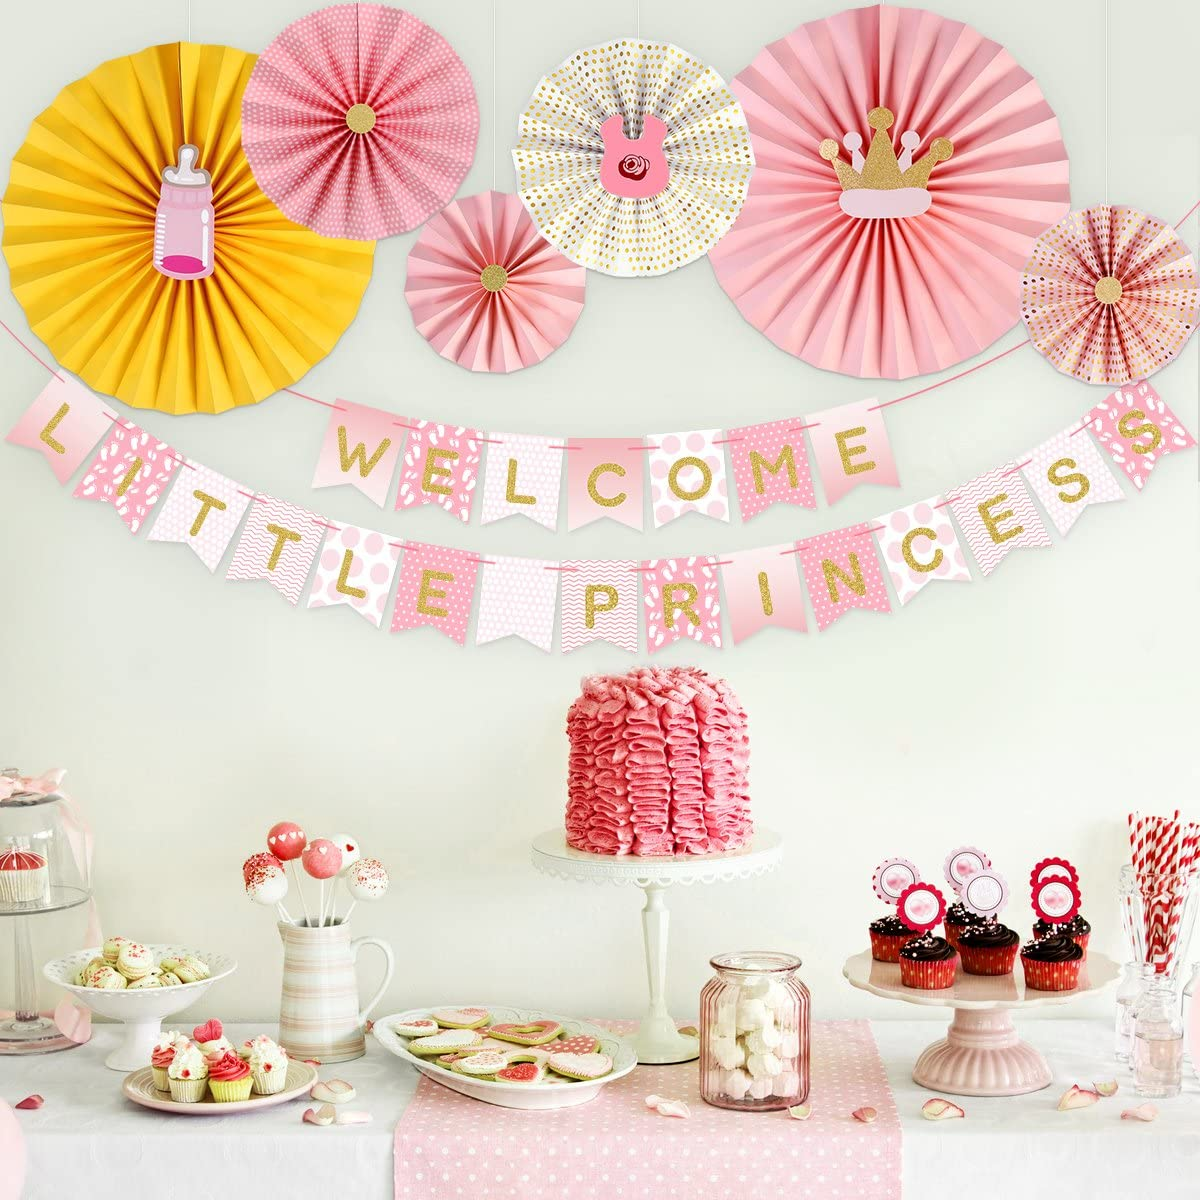 Unomor Baby Shower Decorations Girls Welcome Little Princess Banner With 6 Paper Fans For Baby Girl Shower Party Decoration Pink Amazon Co Uk Kitchen Home